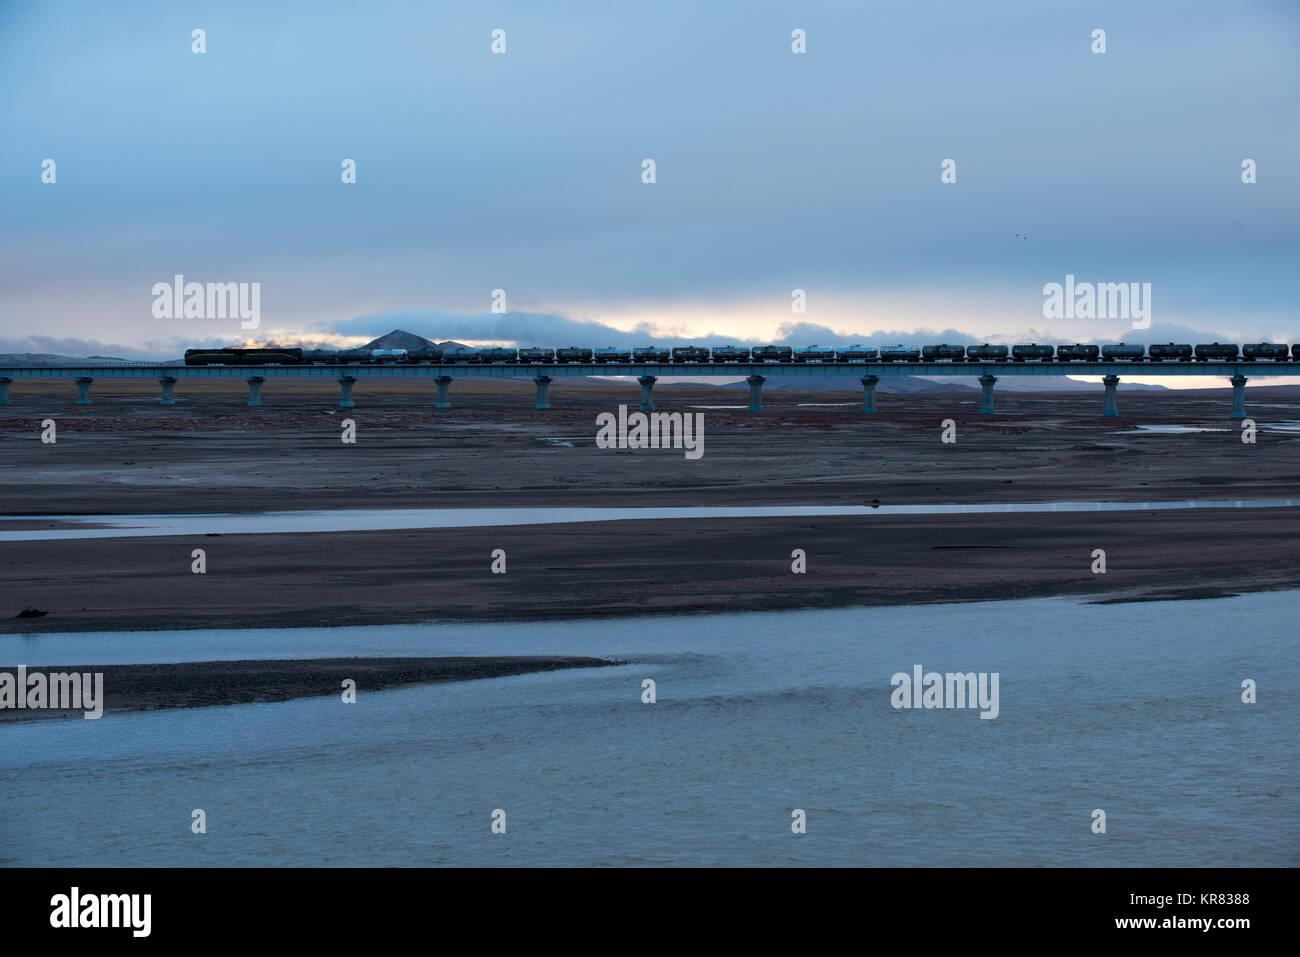 Tuotuo River wetland scenery in Qinghai Province,China - Stock Image